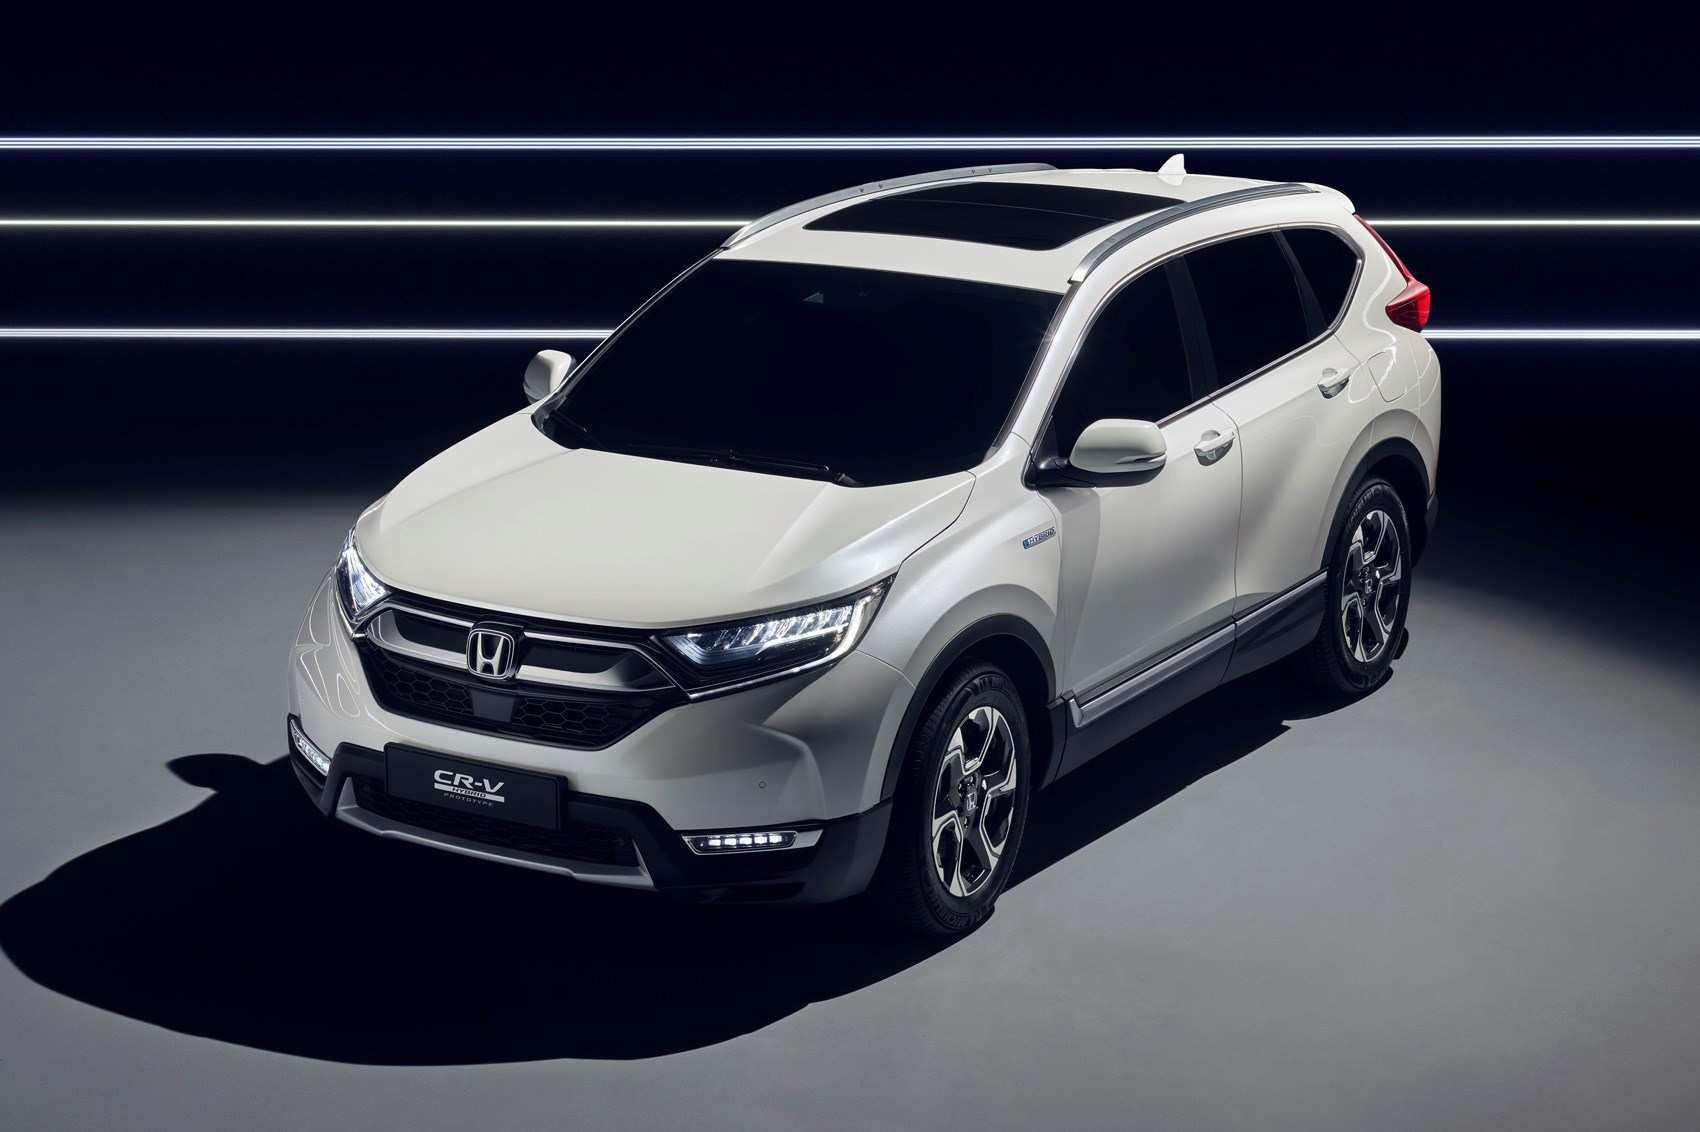 91 New Honda Crv 2020 Price Design And Review